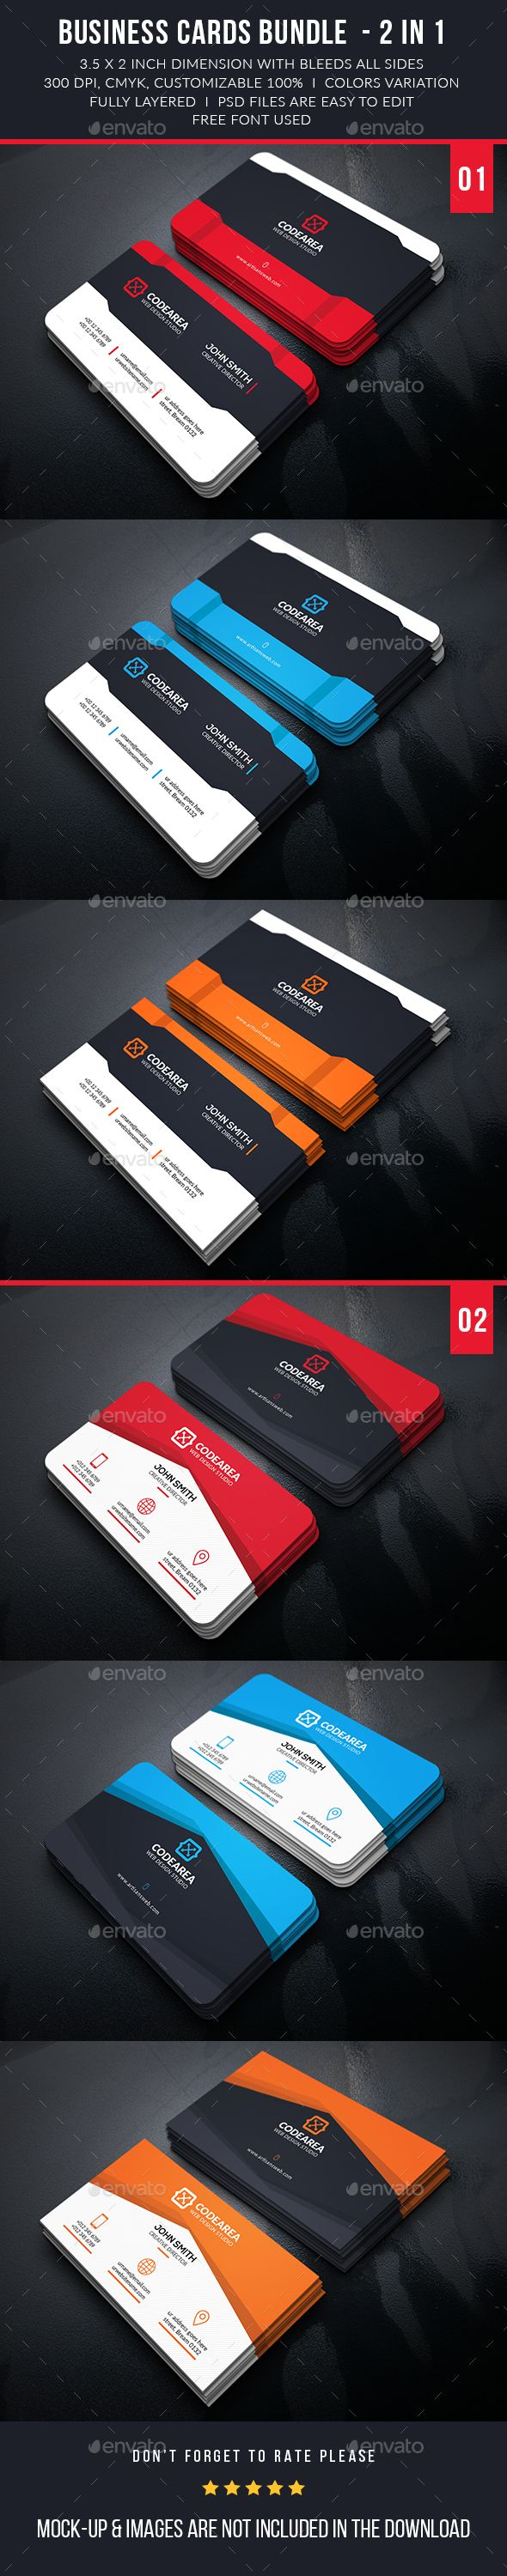 13 Best Business Cards Images On Pinterest Business Cards Carte